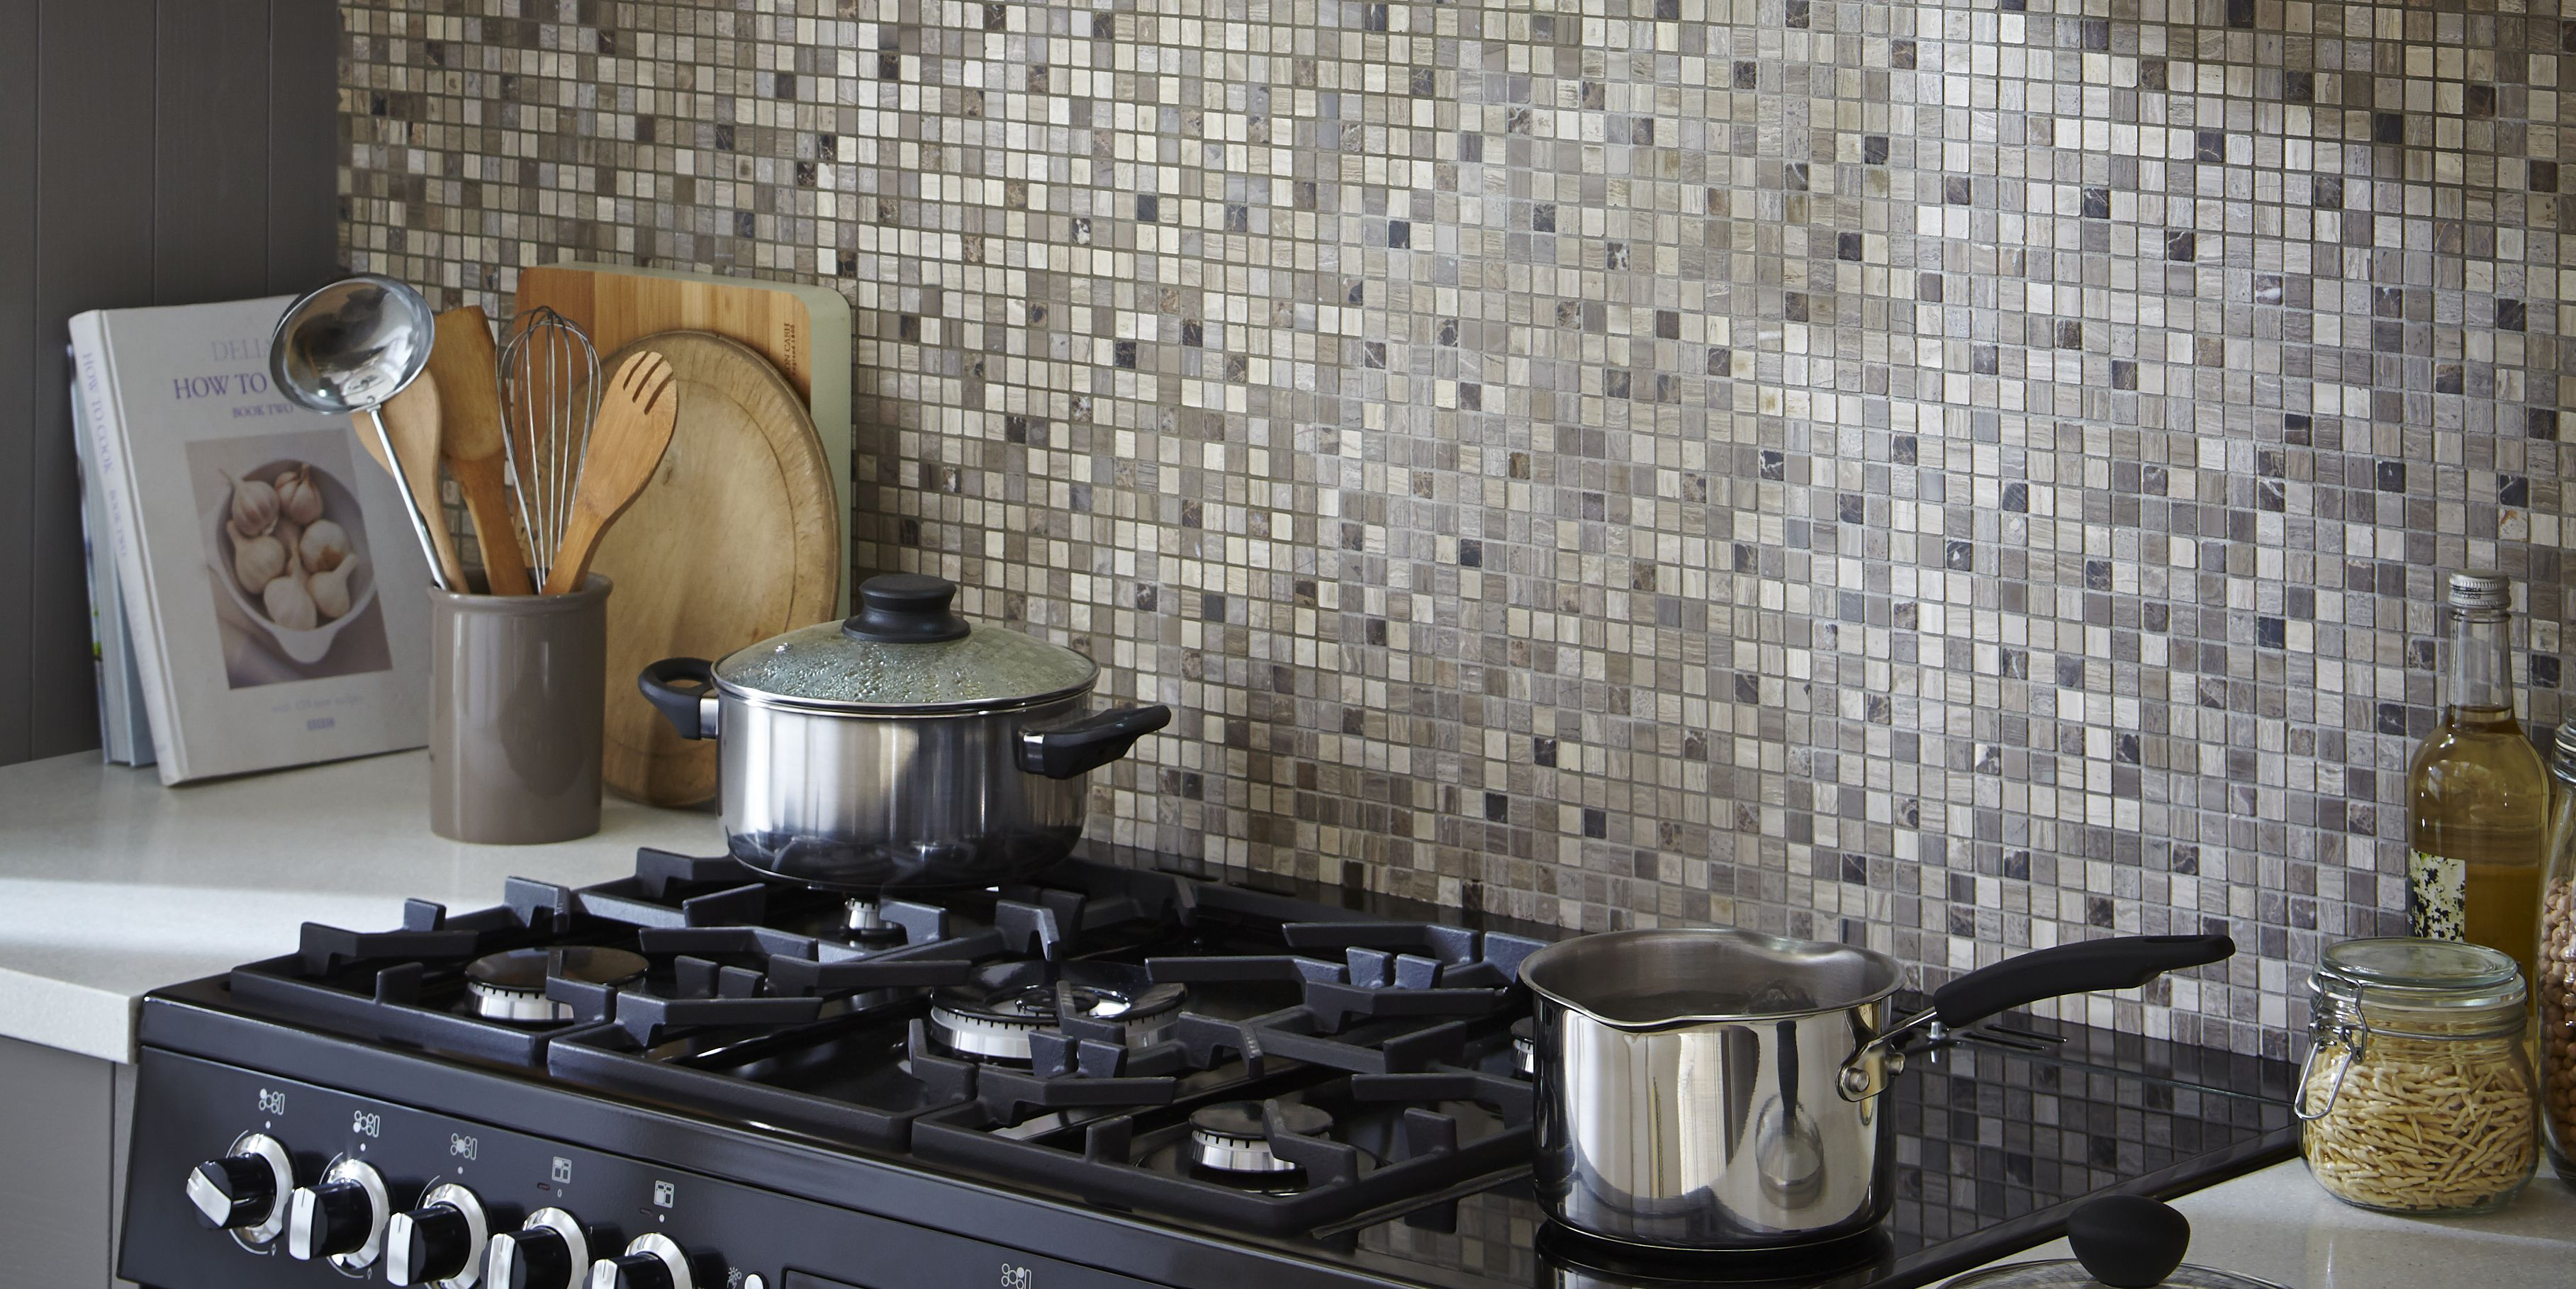 images kitchen tiles tiles buying guide ideas amp advice diy at b amp q 1817